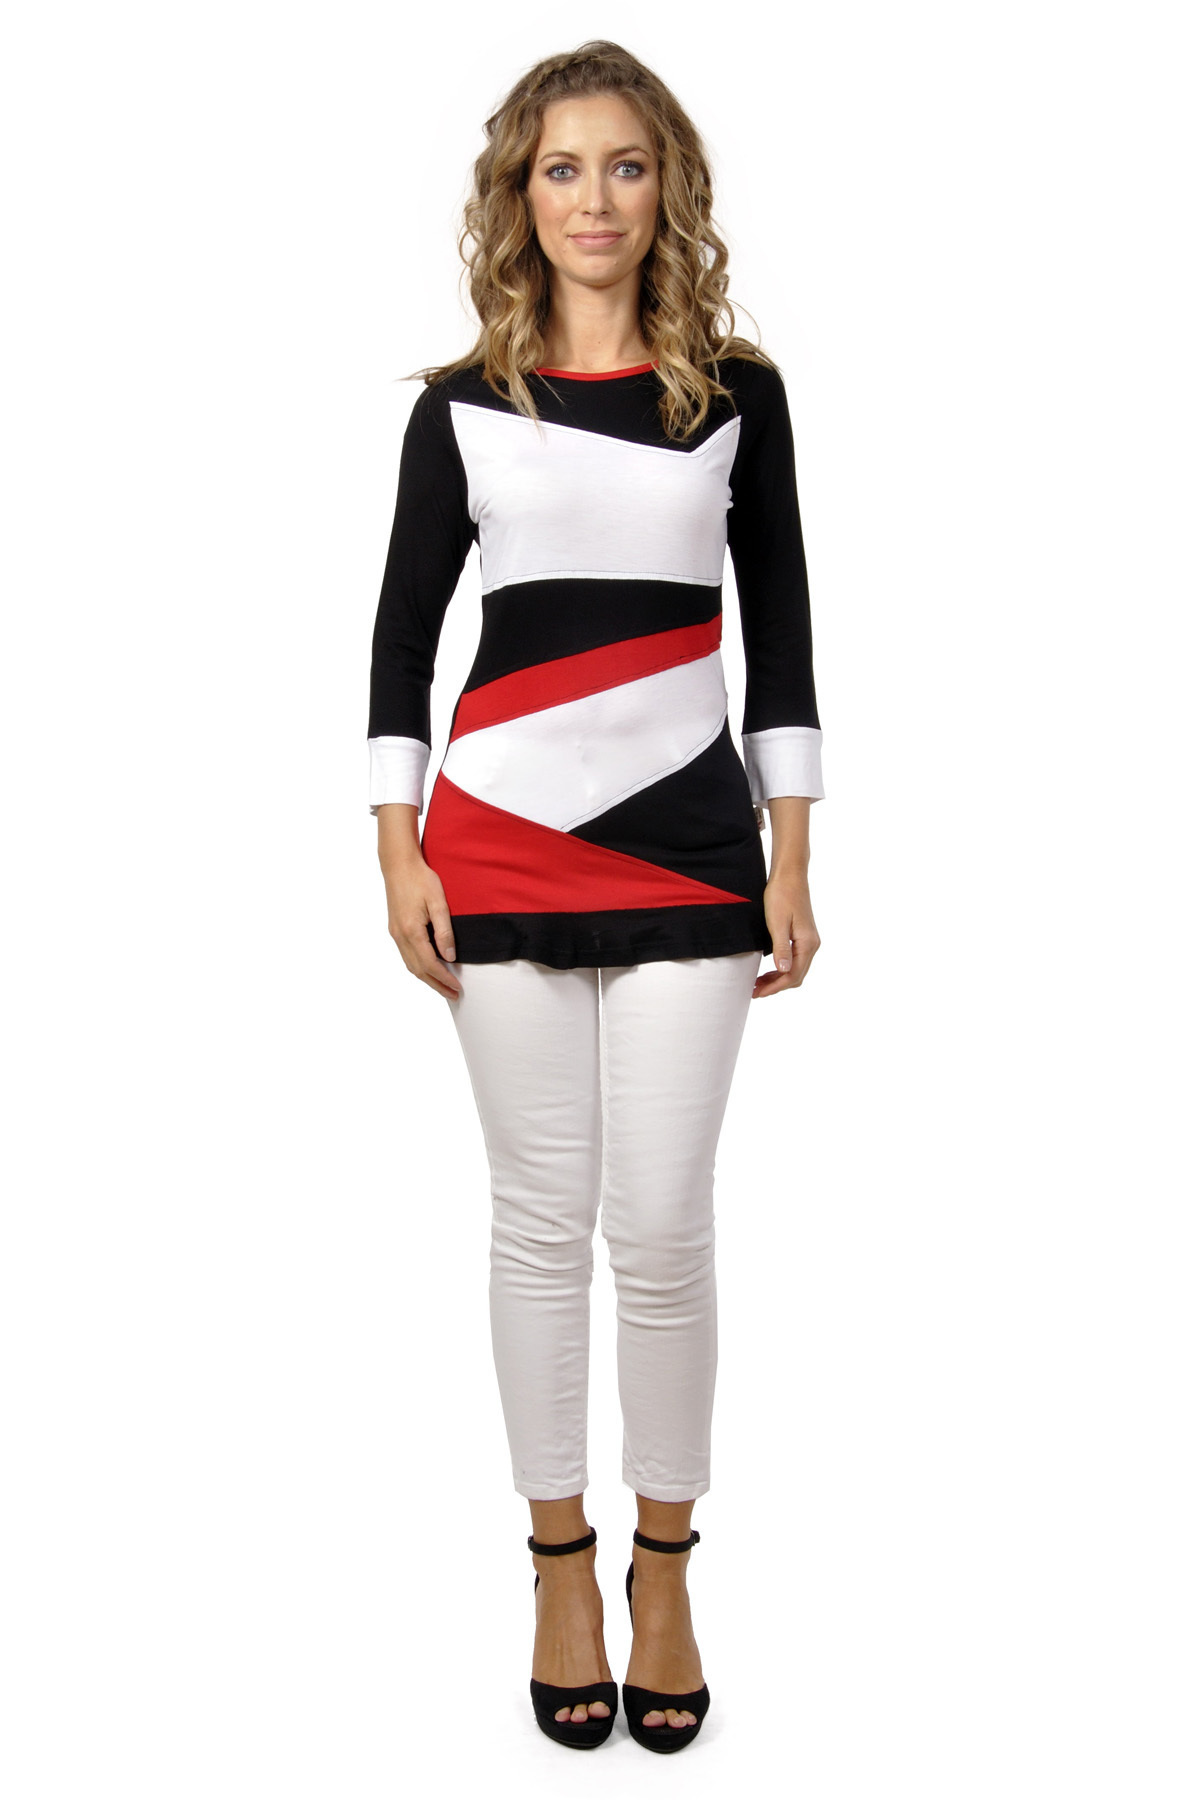 Savage Culture: Dress Me Up Color Block Tunic Suzette (1 Left!)